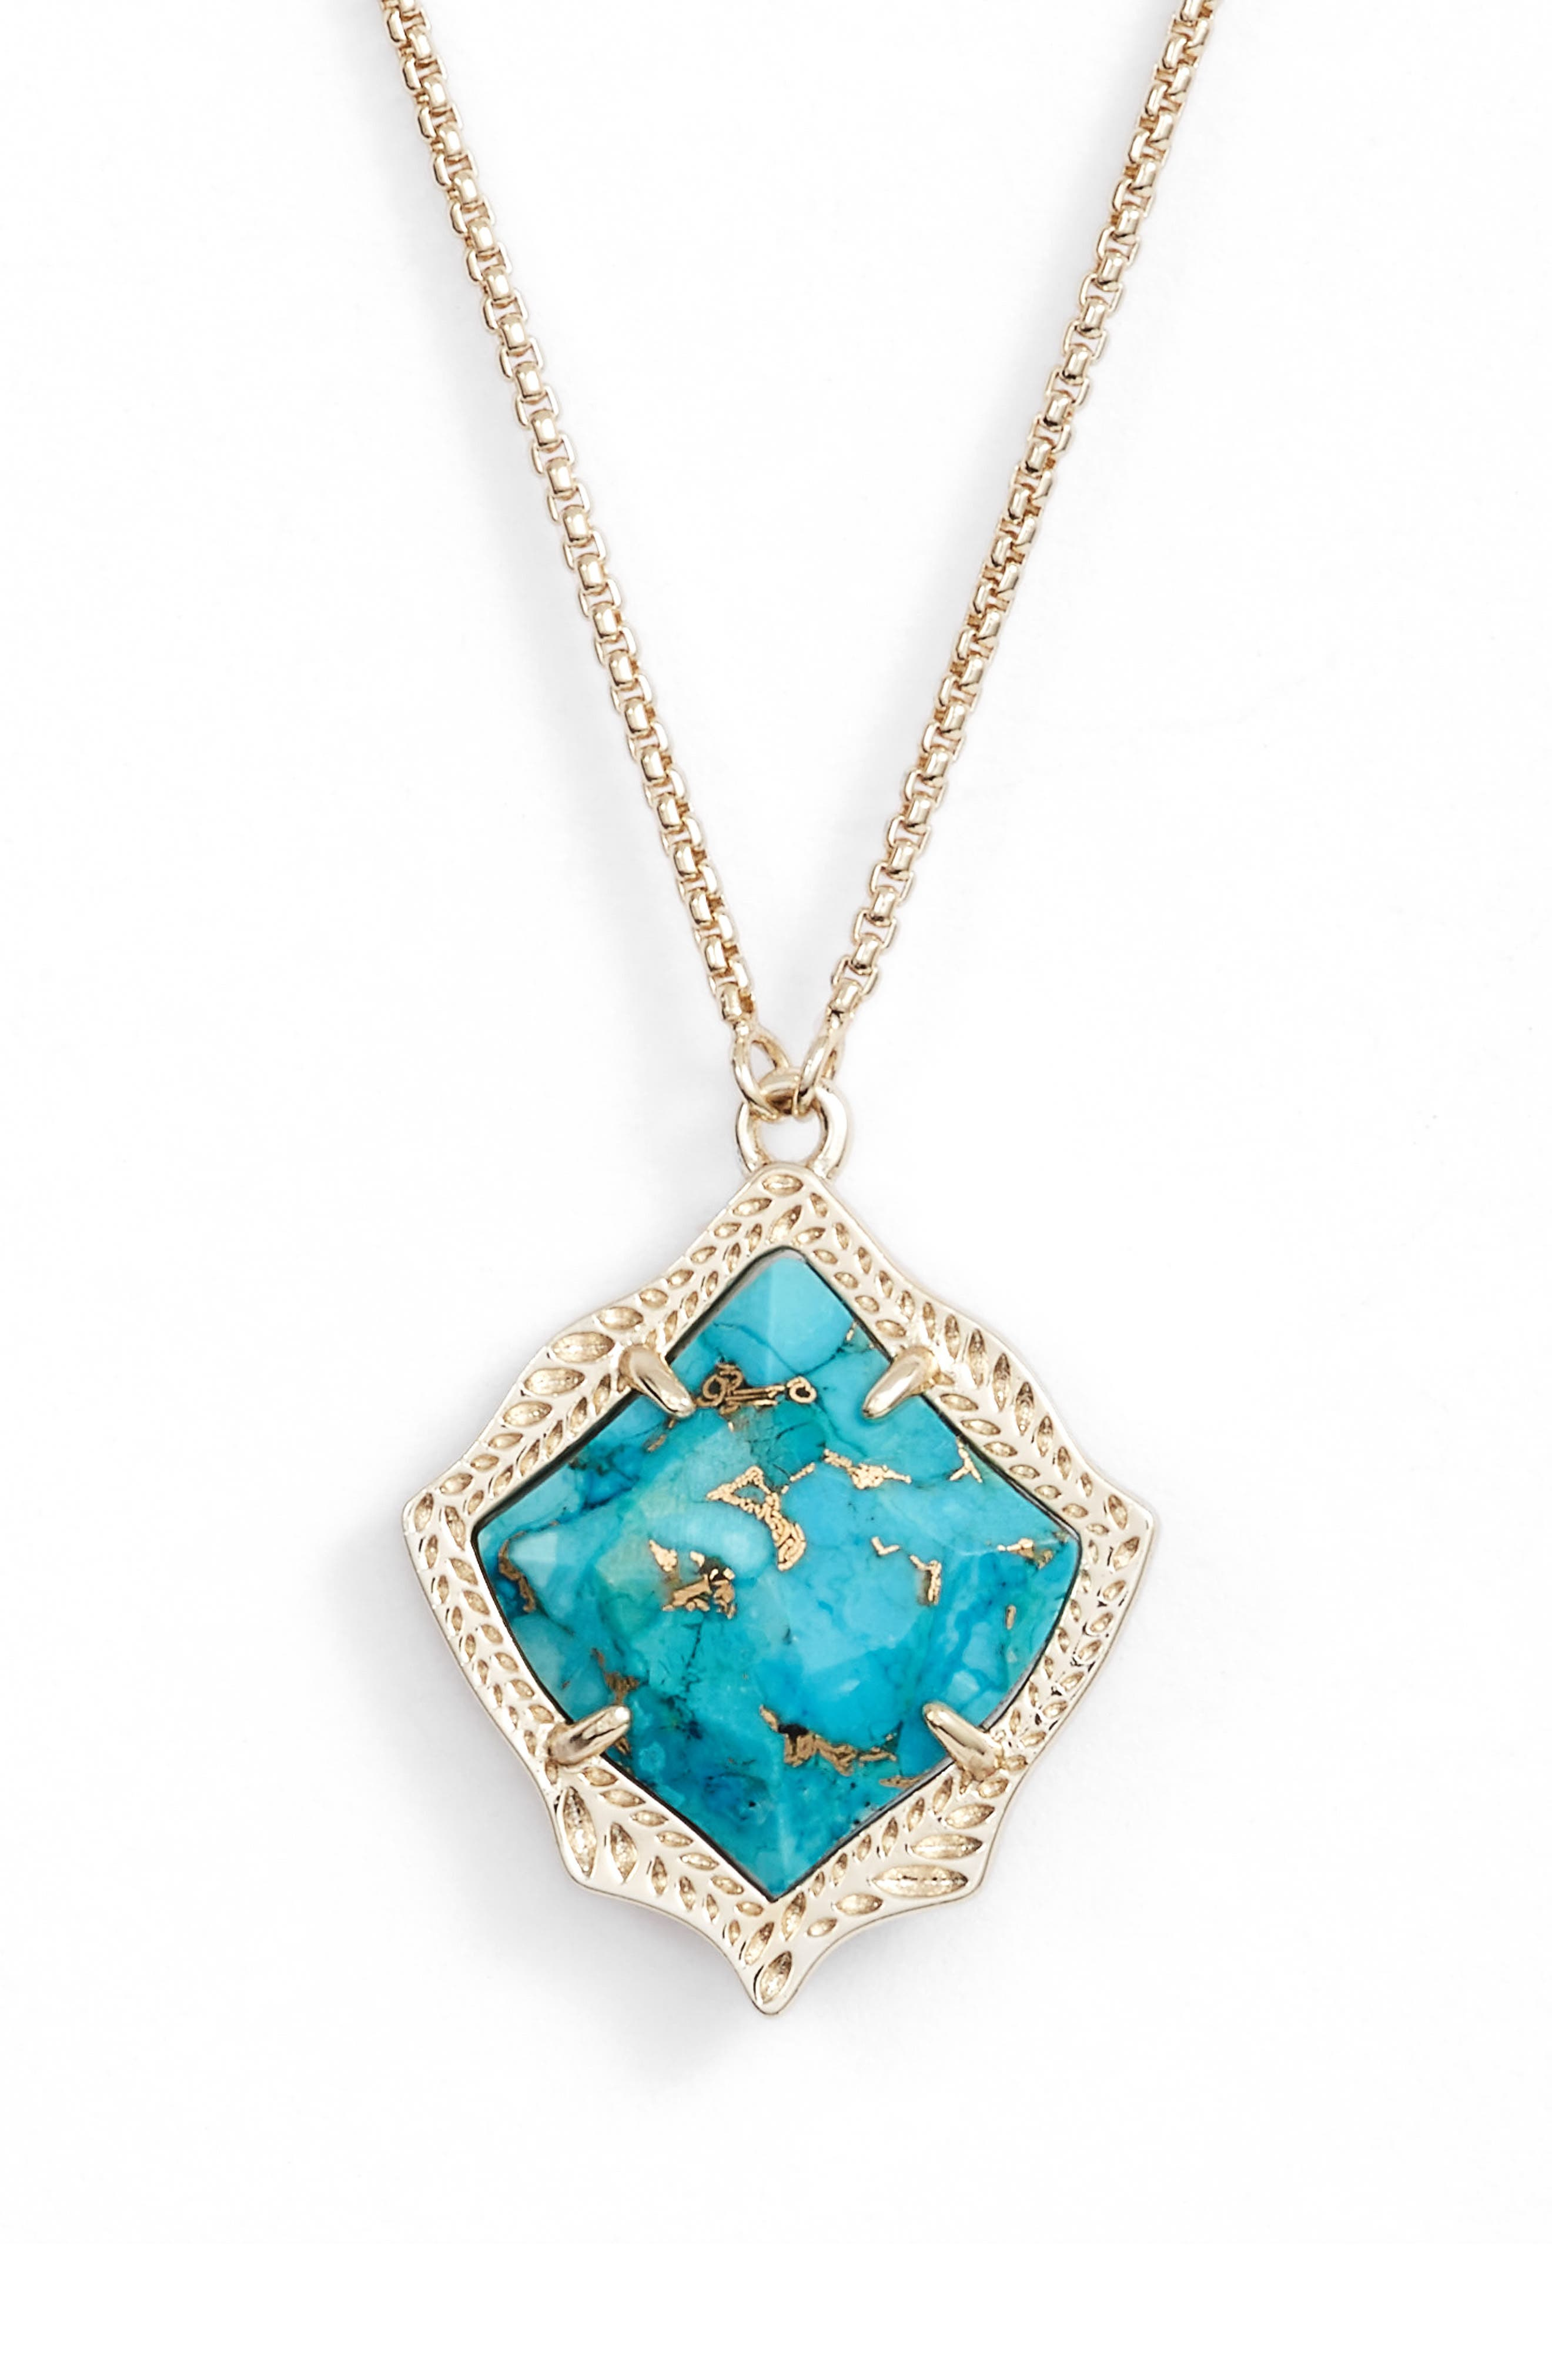 KENDRA SCOTT, Kacey Pendant Necklace, Main thumbnail 1, color, TURQUOISE MAGNESITE/ GOLD